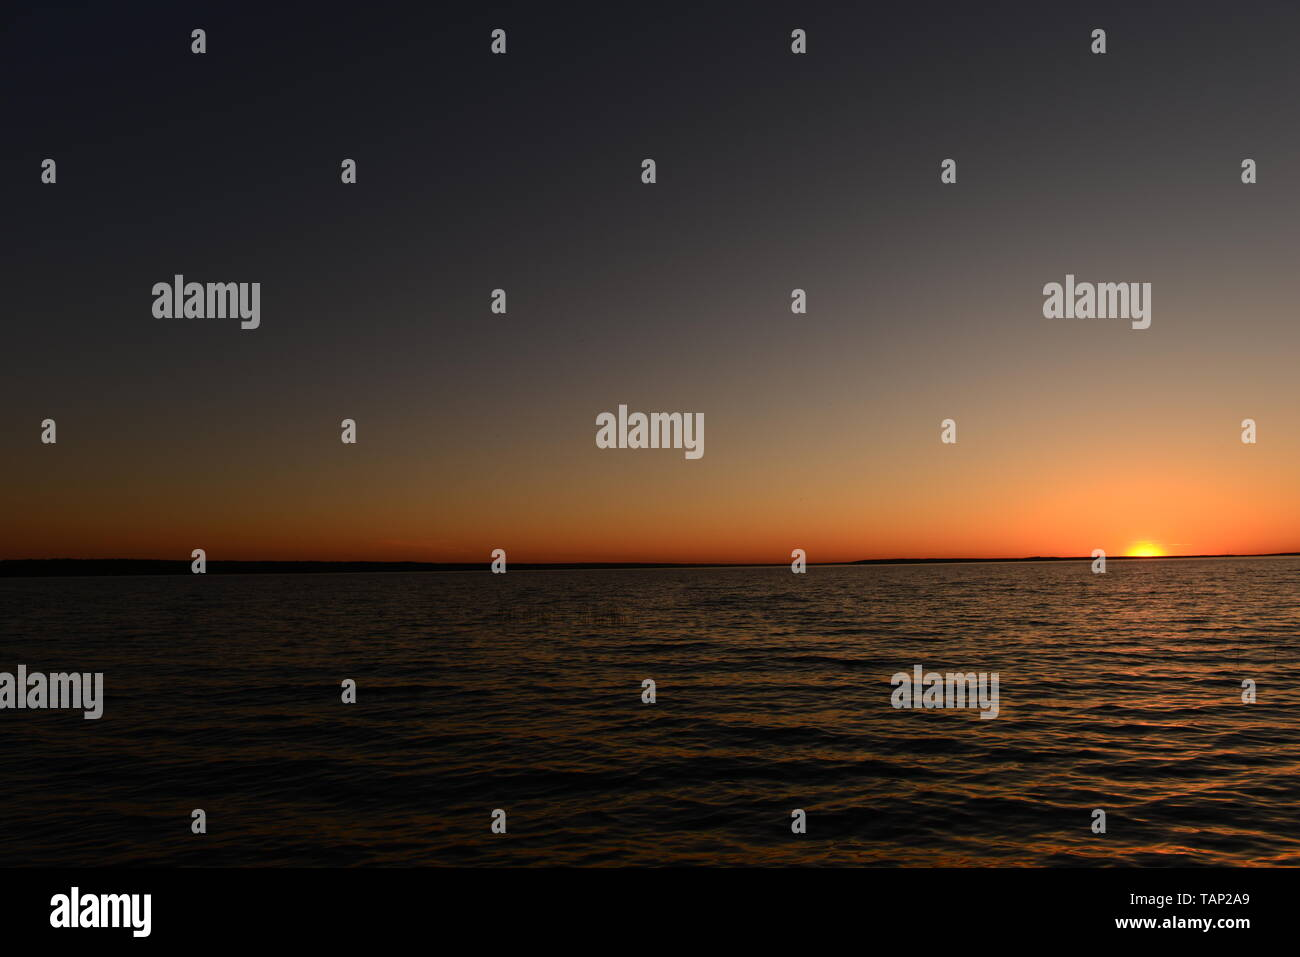 Dark sky in the glow of sunlight in a semicircle around the sun on the horizon above the water of the lake at sunset - Stock Image